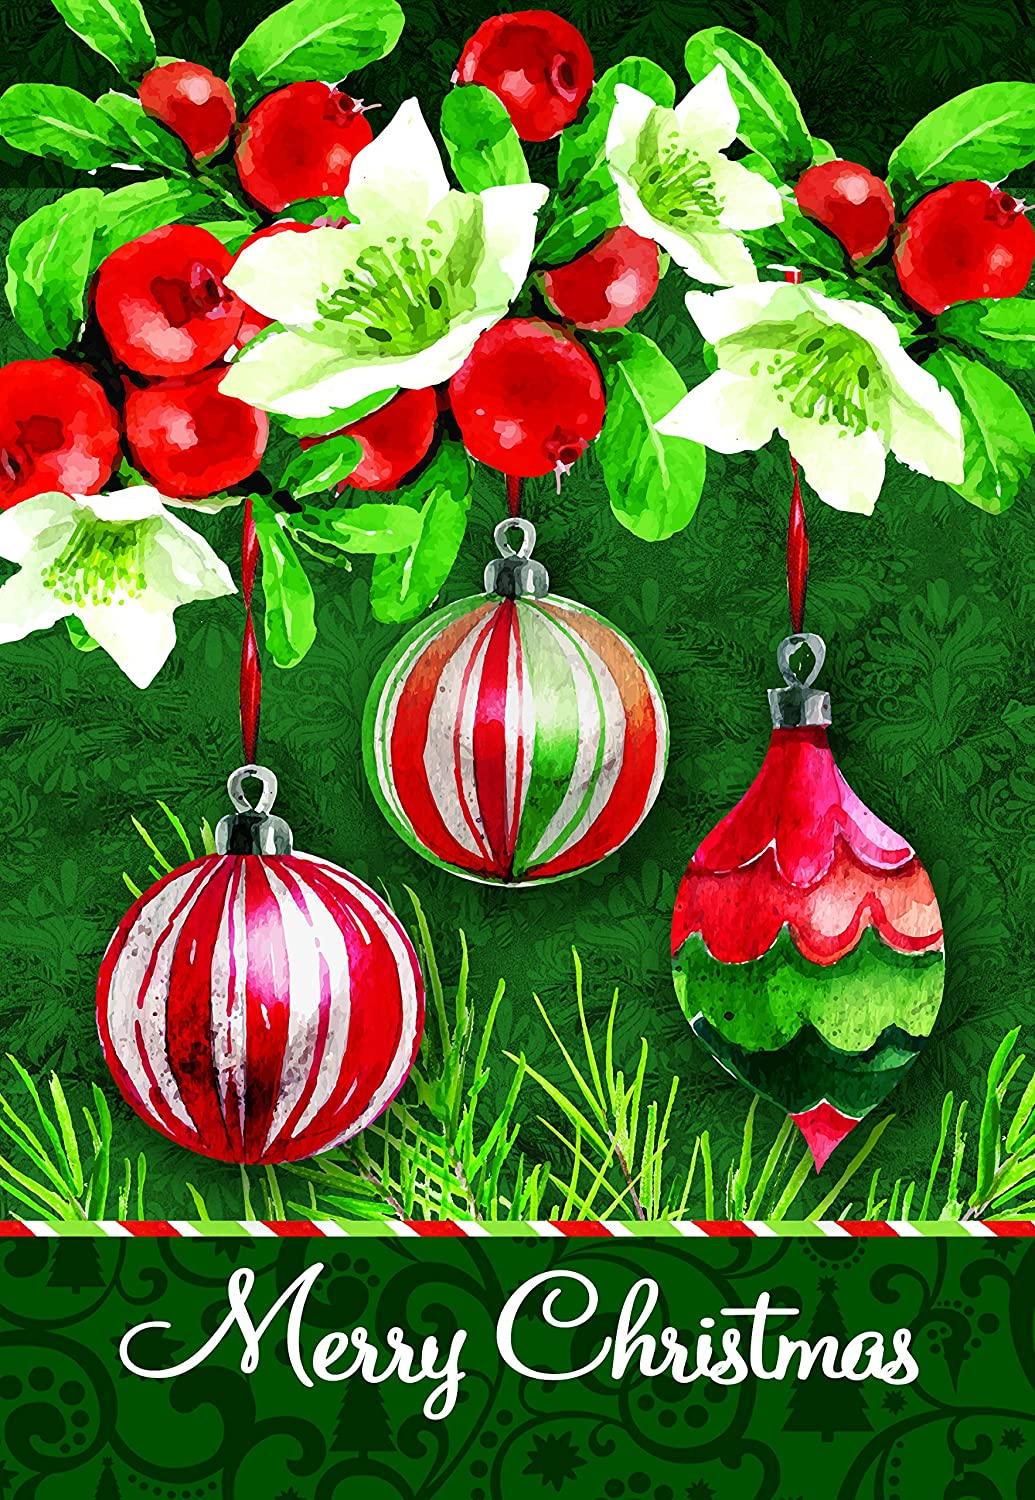 Lantern Hill Red And Green Merry Christmas Ornaments Garden Flag Double Sided 12 5 X 18 Inches Winter Holiday Seasonal Decorative Banner Amazon In Garden Outdoors